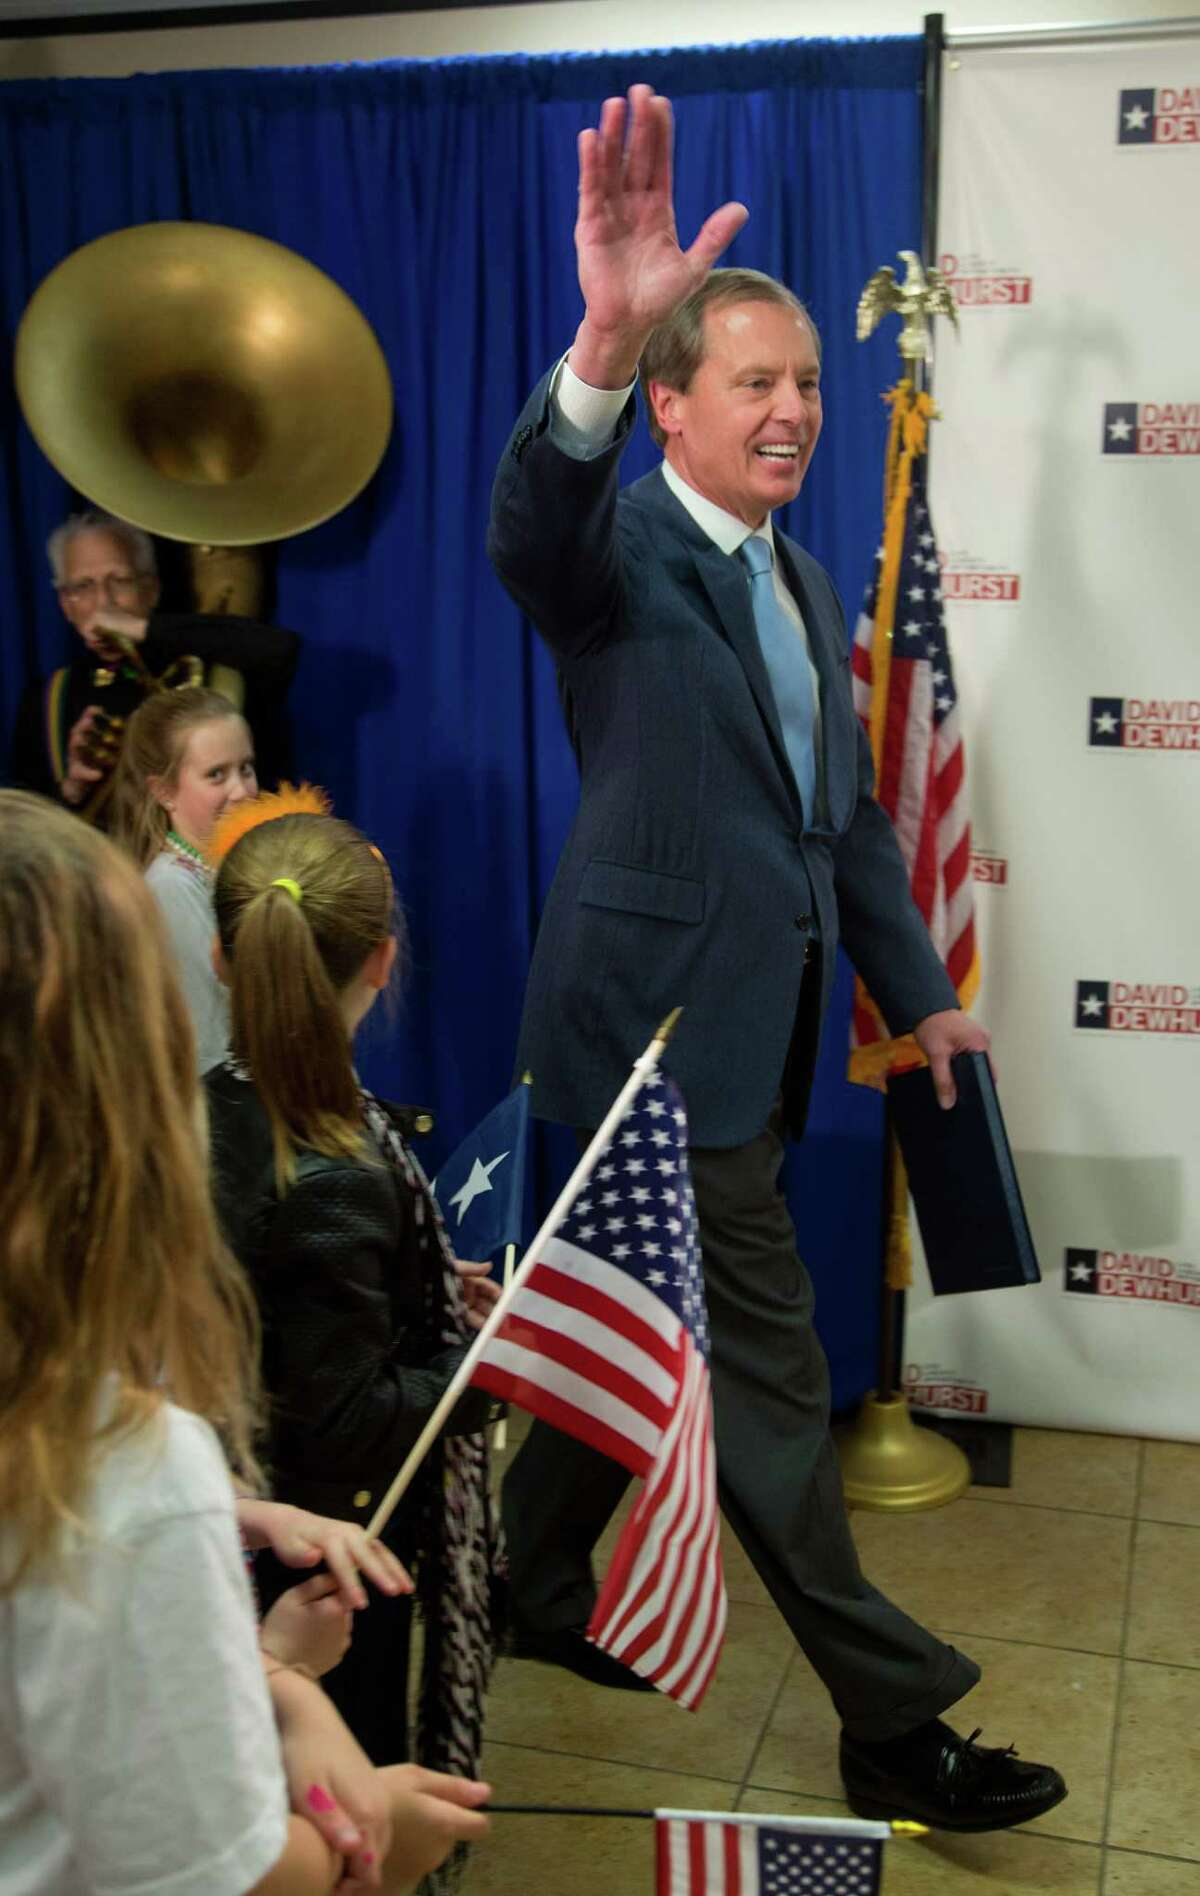 Texas Lt. Gov. David Dewhurst waves to supporters as he enters a news conference after a runoff was predicted against Republican primary challenger Dan Patrick in Houston, Tuesday, March 4, 2014. (AP Photo/Richard Carson)